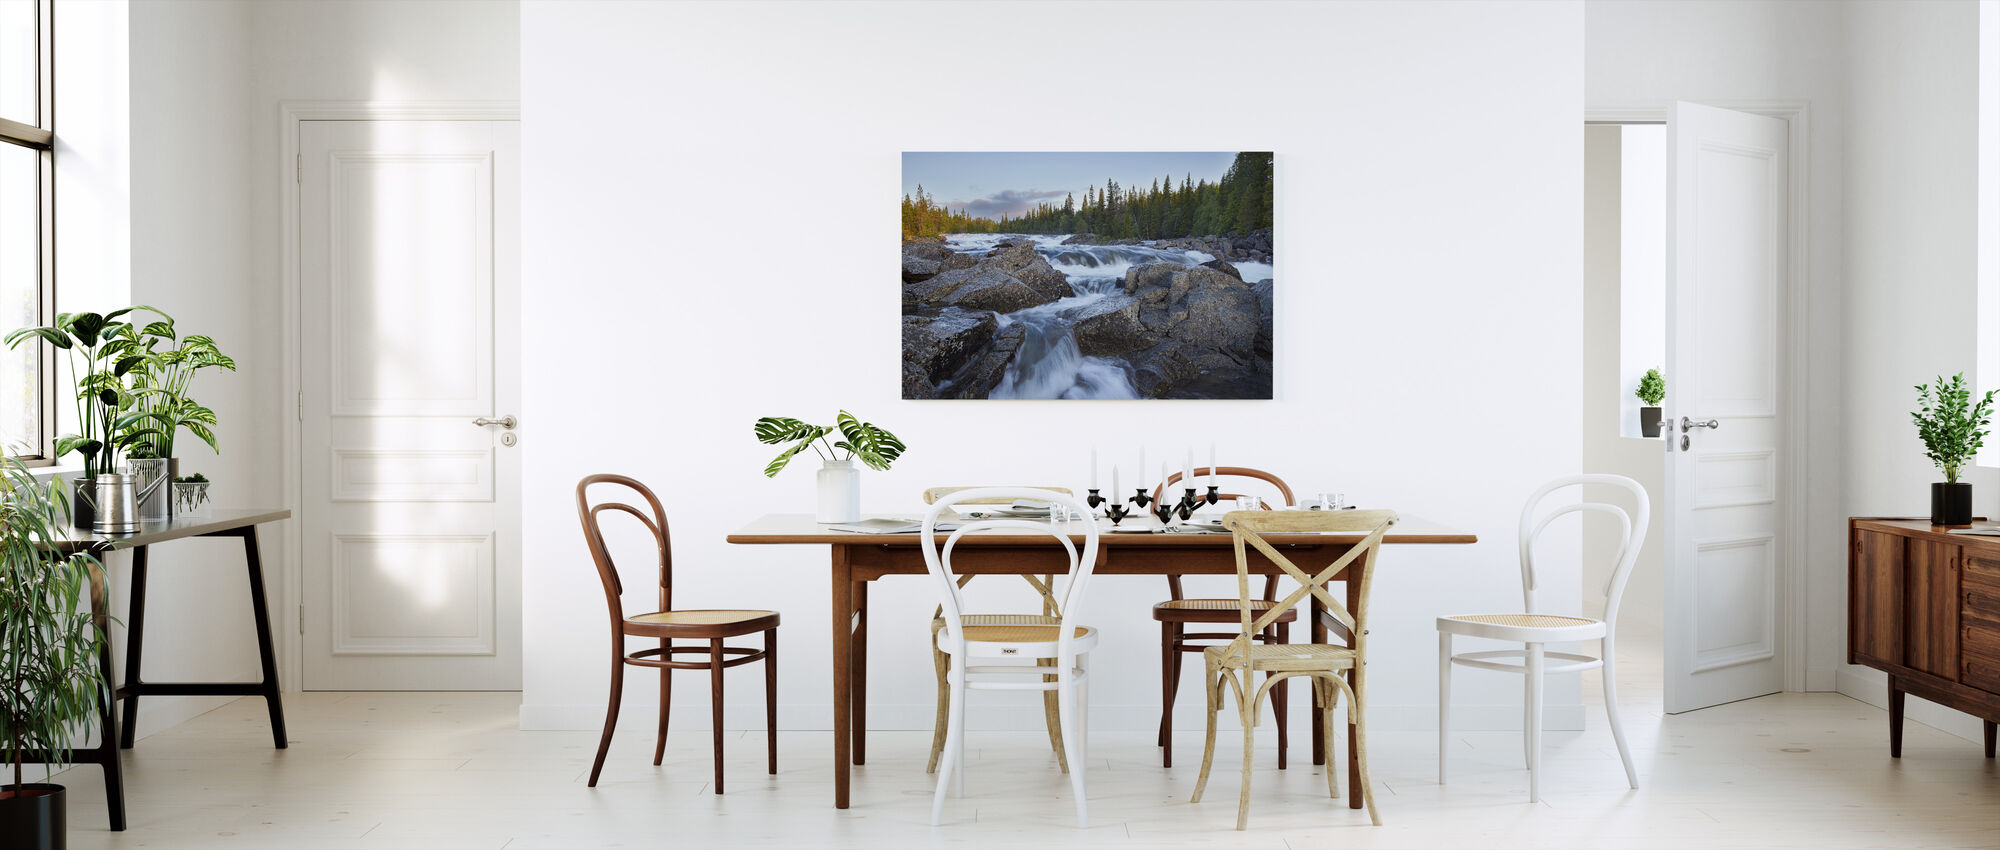 Tännforsen in Jämtland - Canvas print - Kitchen